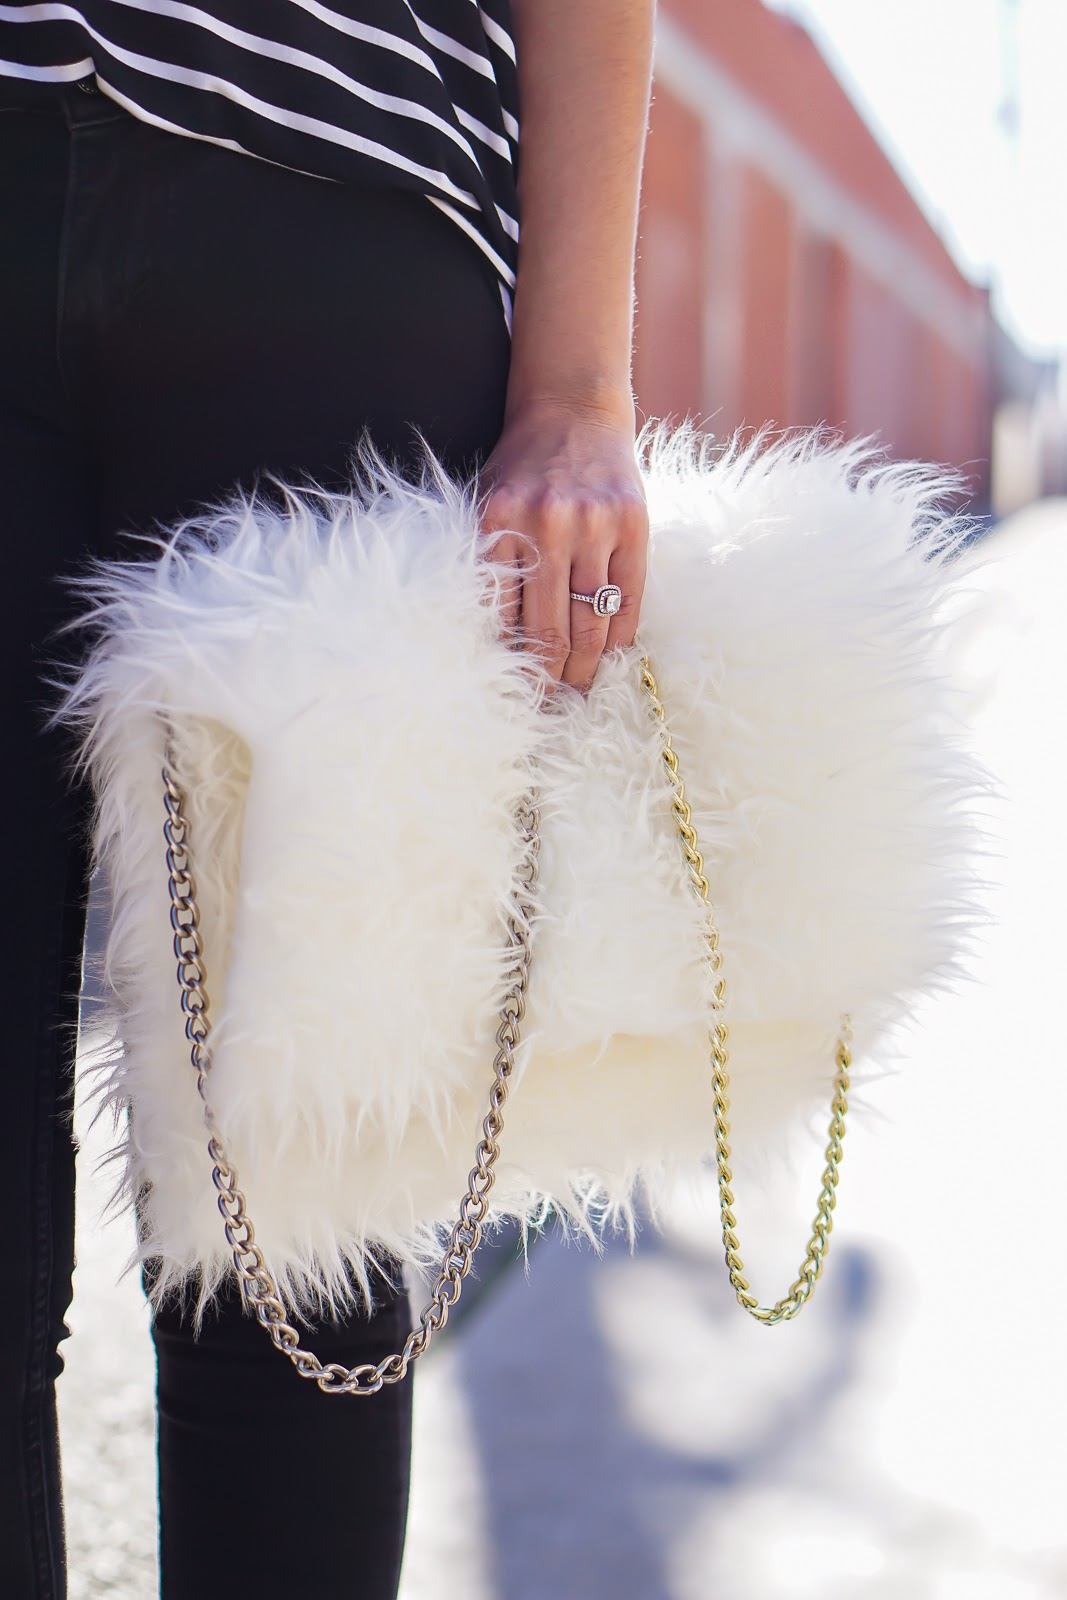 DIY Faux Fur clutch, DIY White Faux Fur bag, Ikea Faux Sheepskin, Zara Black Strappy Heels, Zara High Heel Strappy Sandals, Levis Black Jeggings, Levis Jeans, Striped Shirt, Joe Fresh Striped Top,